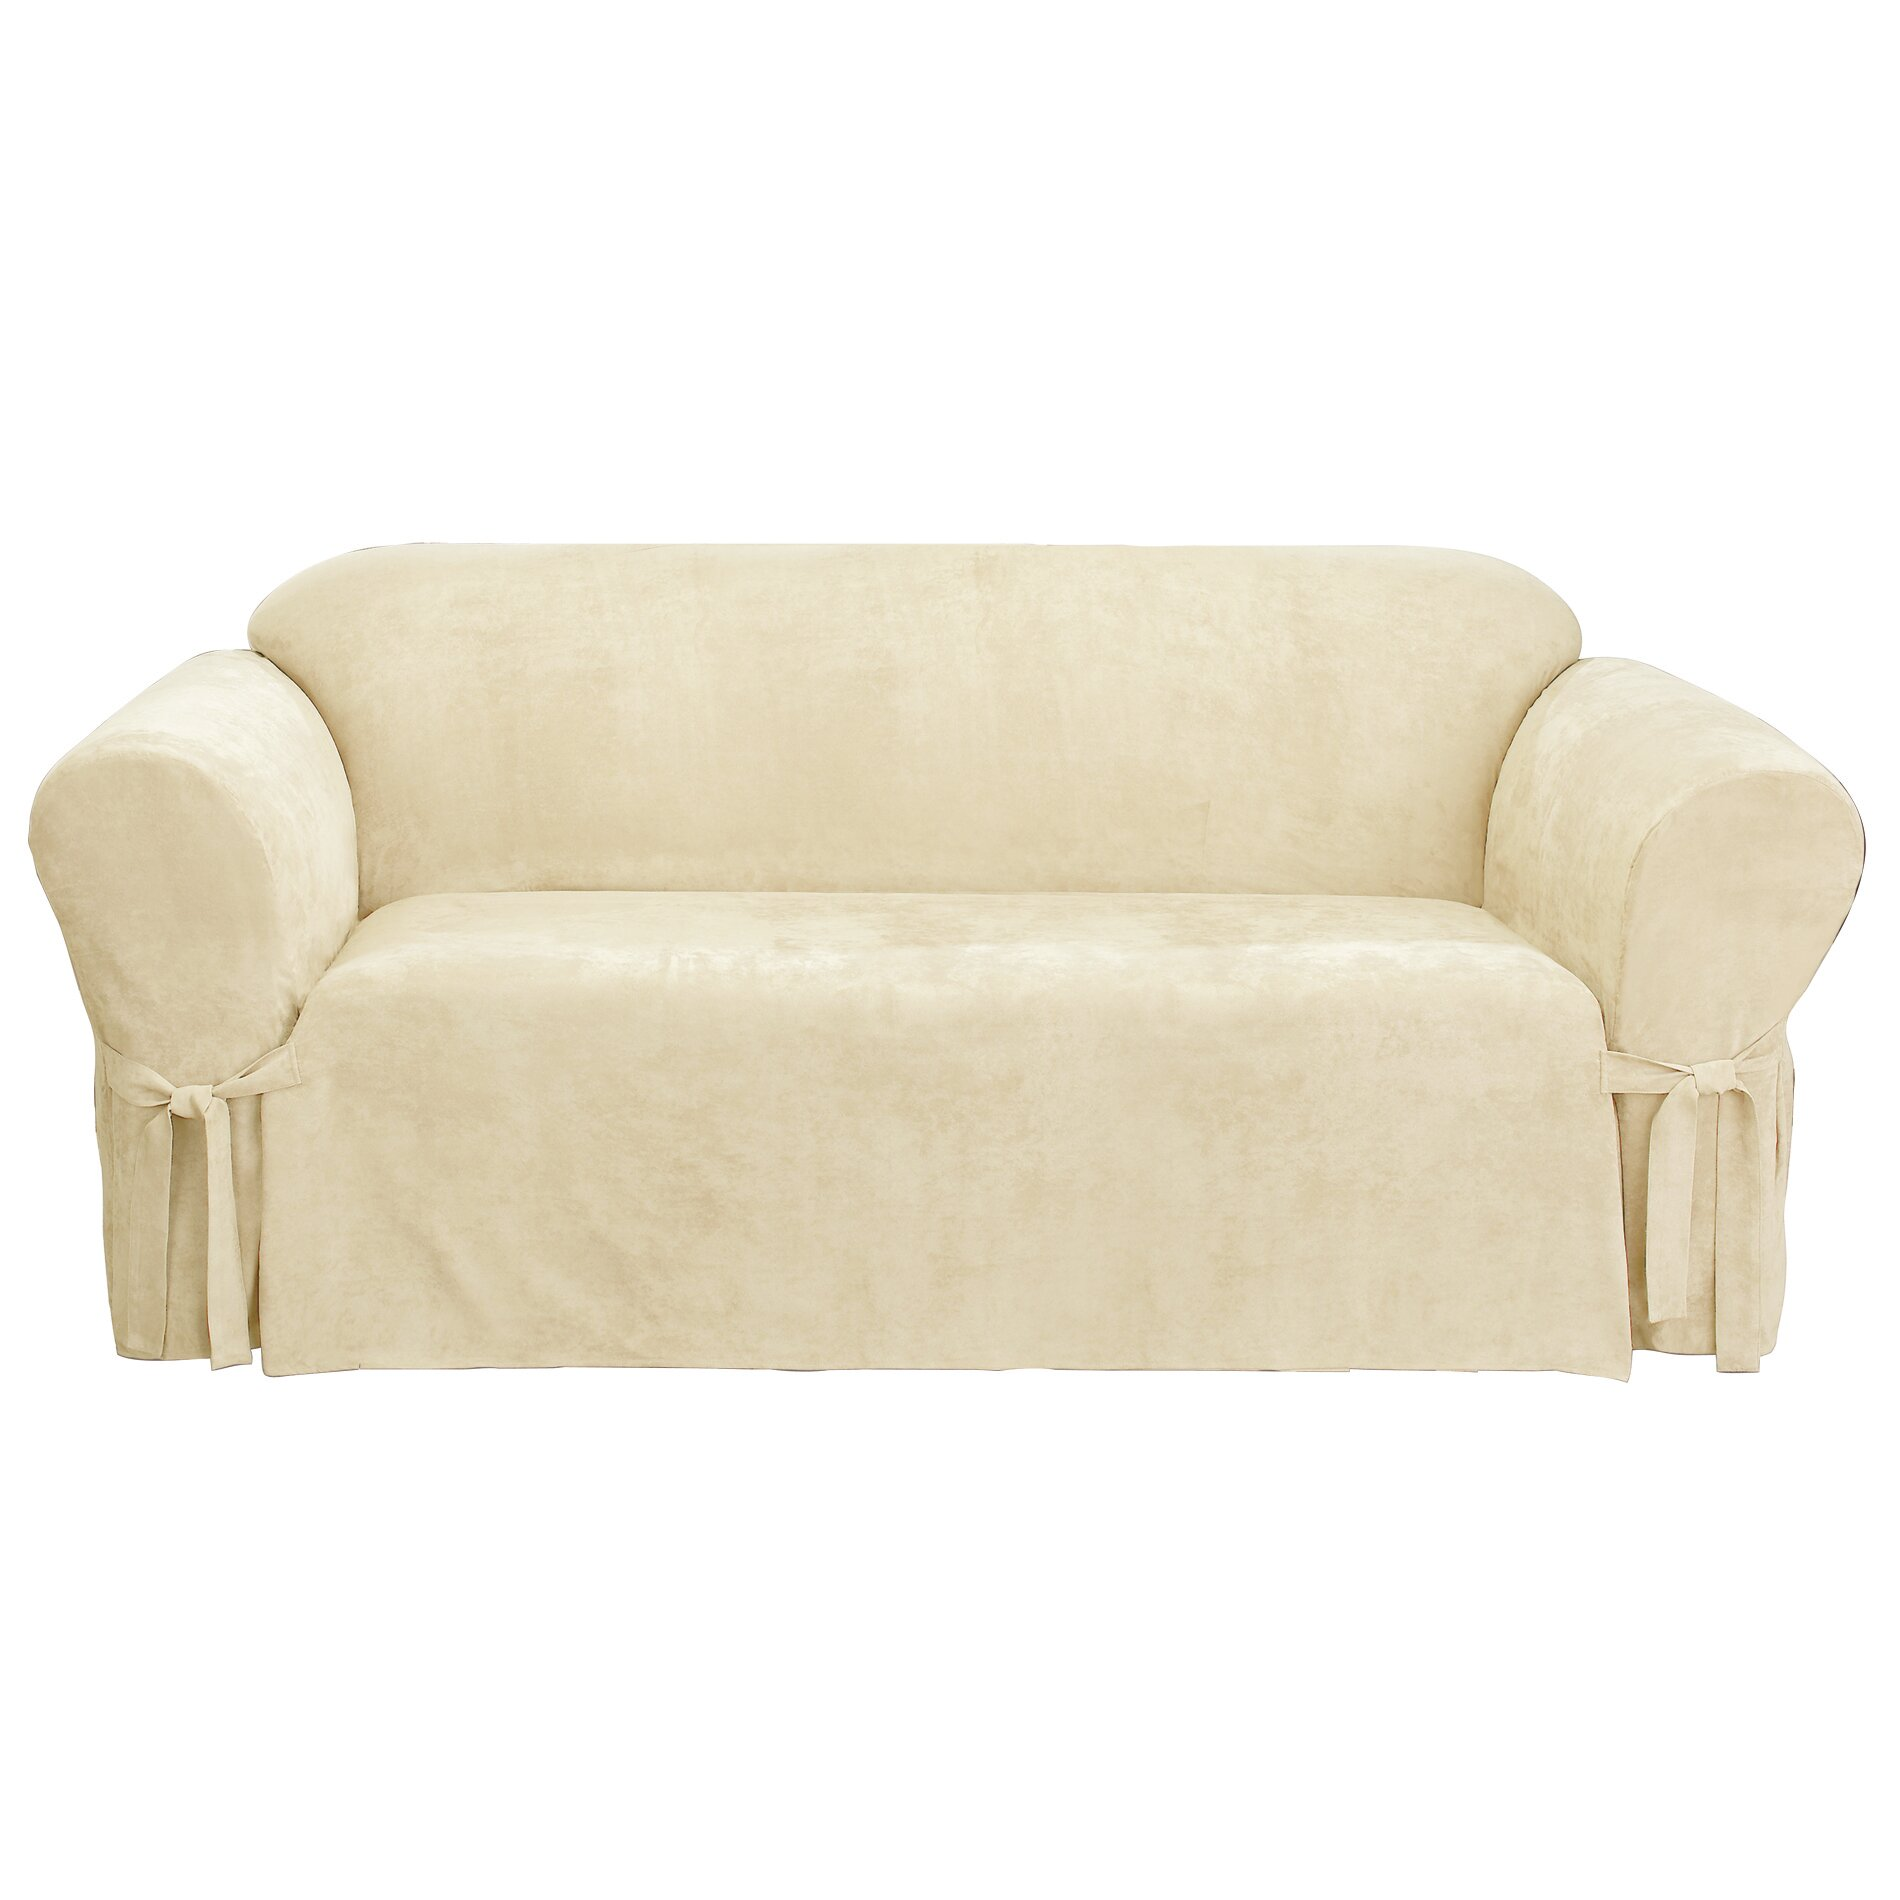 Sure fit soft suede sofa slipcover reviews wayfair for Suede slipcovers